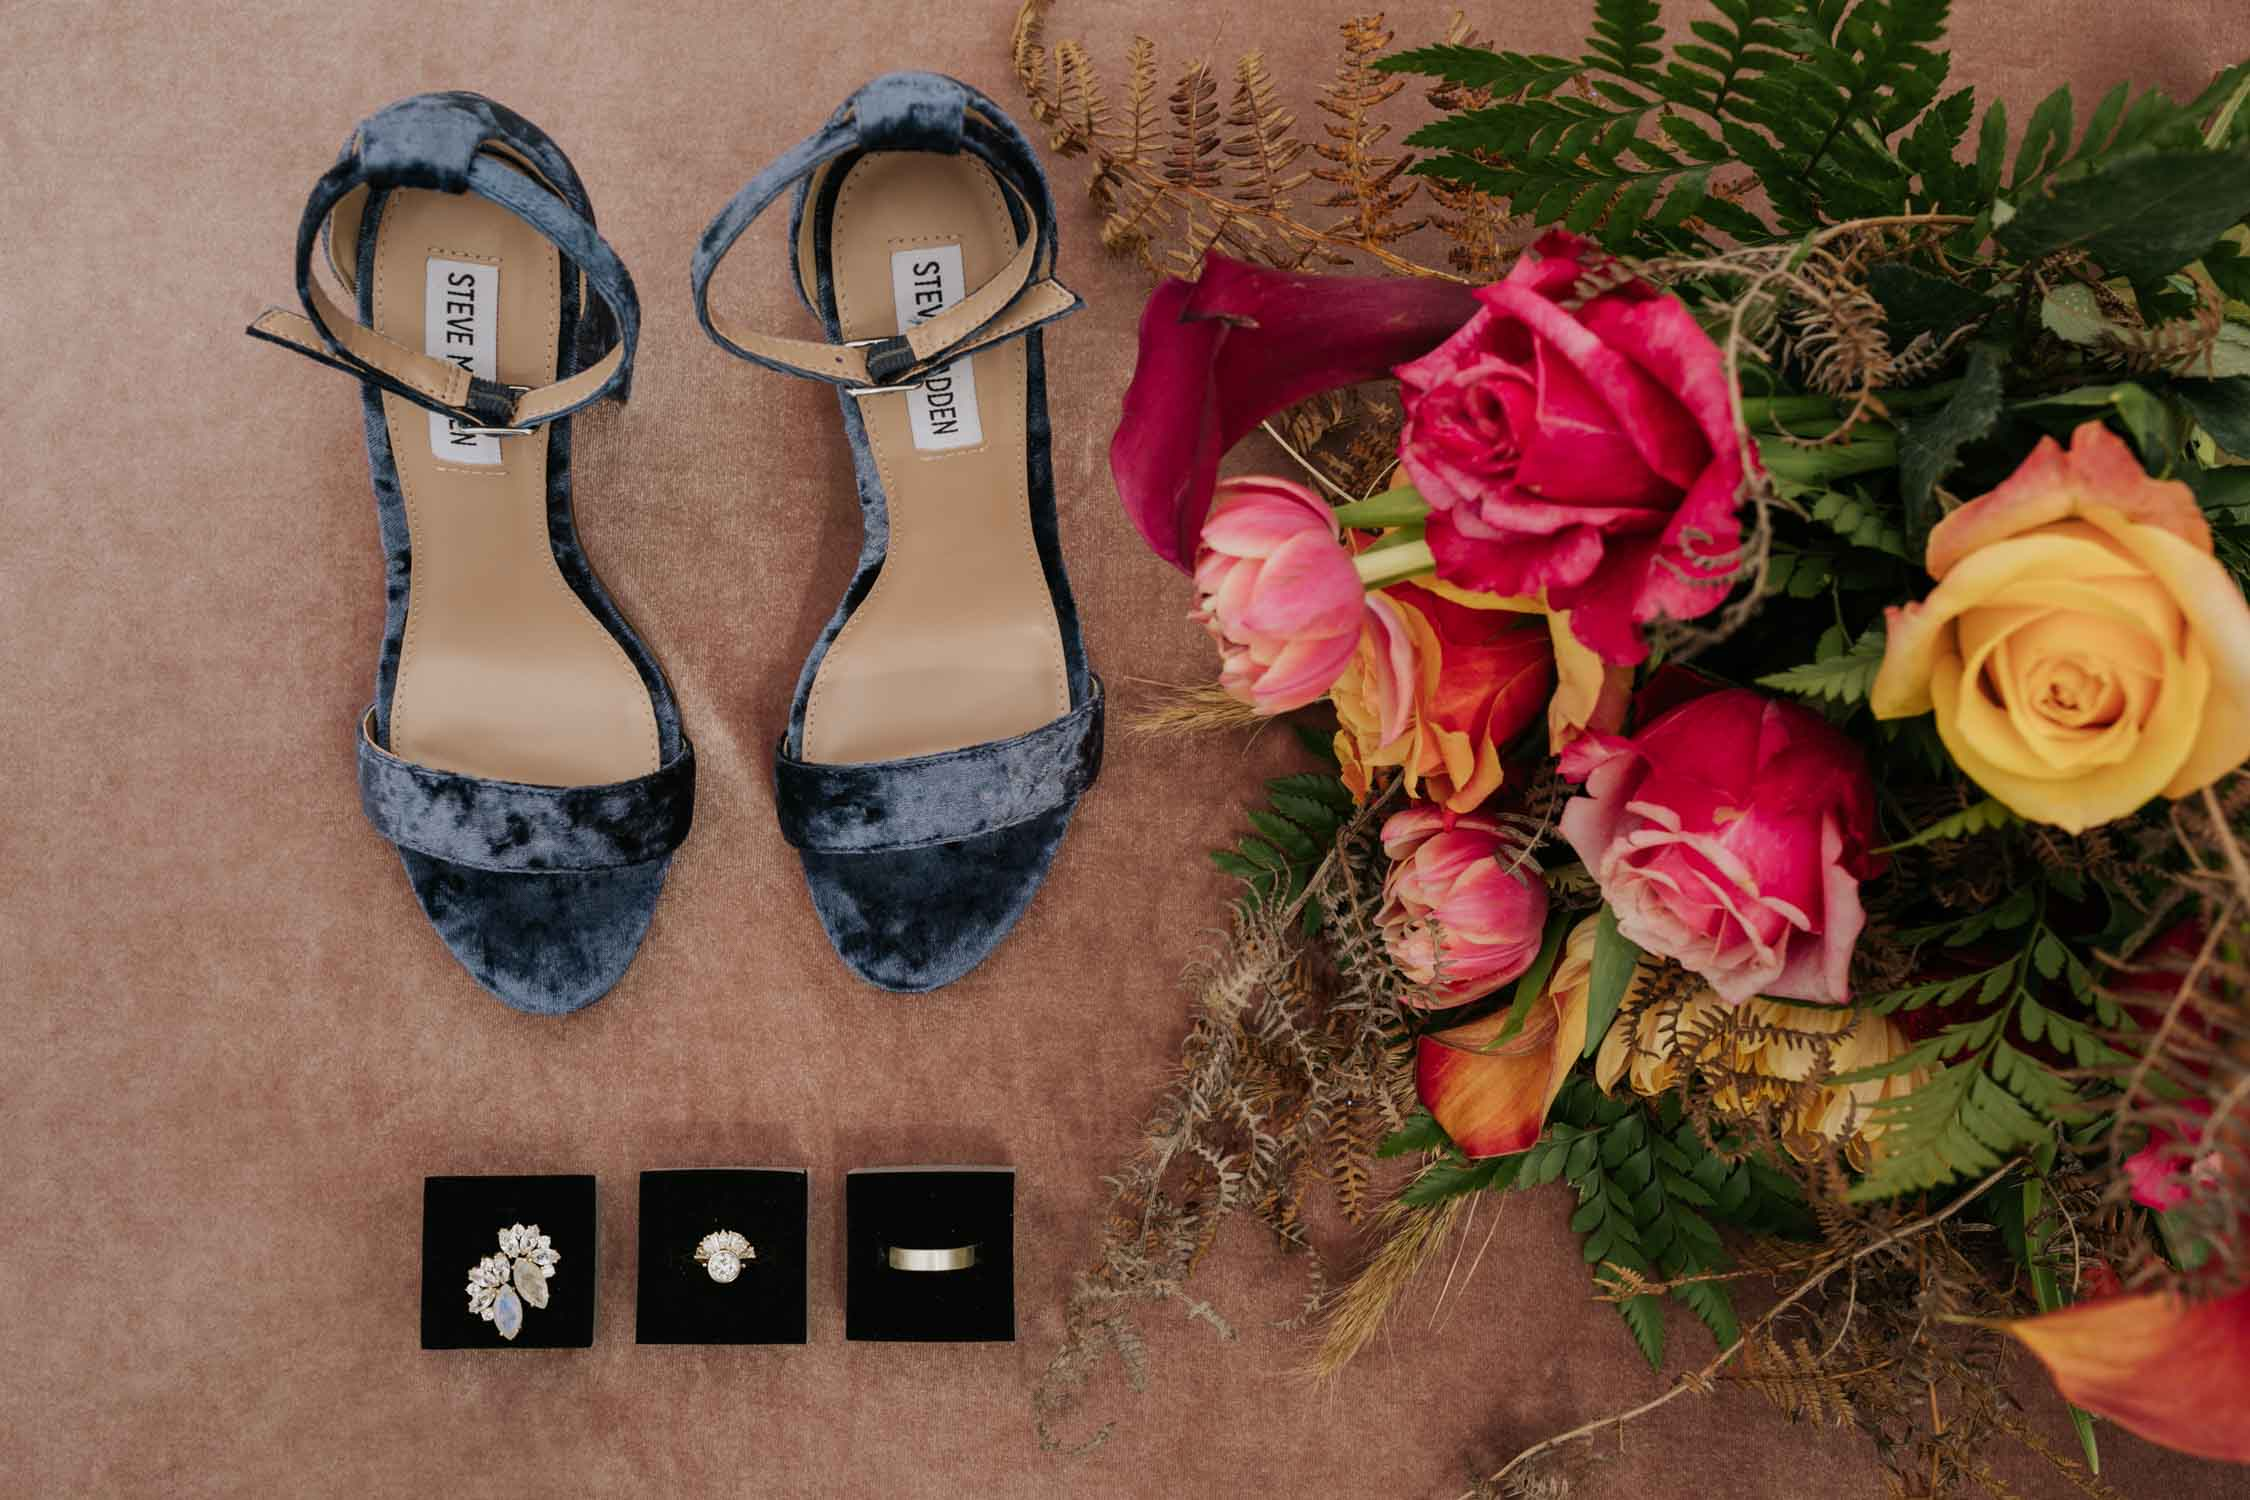 Wedding flat lay with blue velvet shoes, wedding accessories and pink and orange rose bouquet